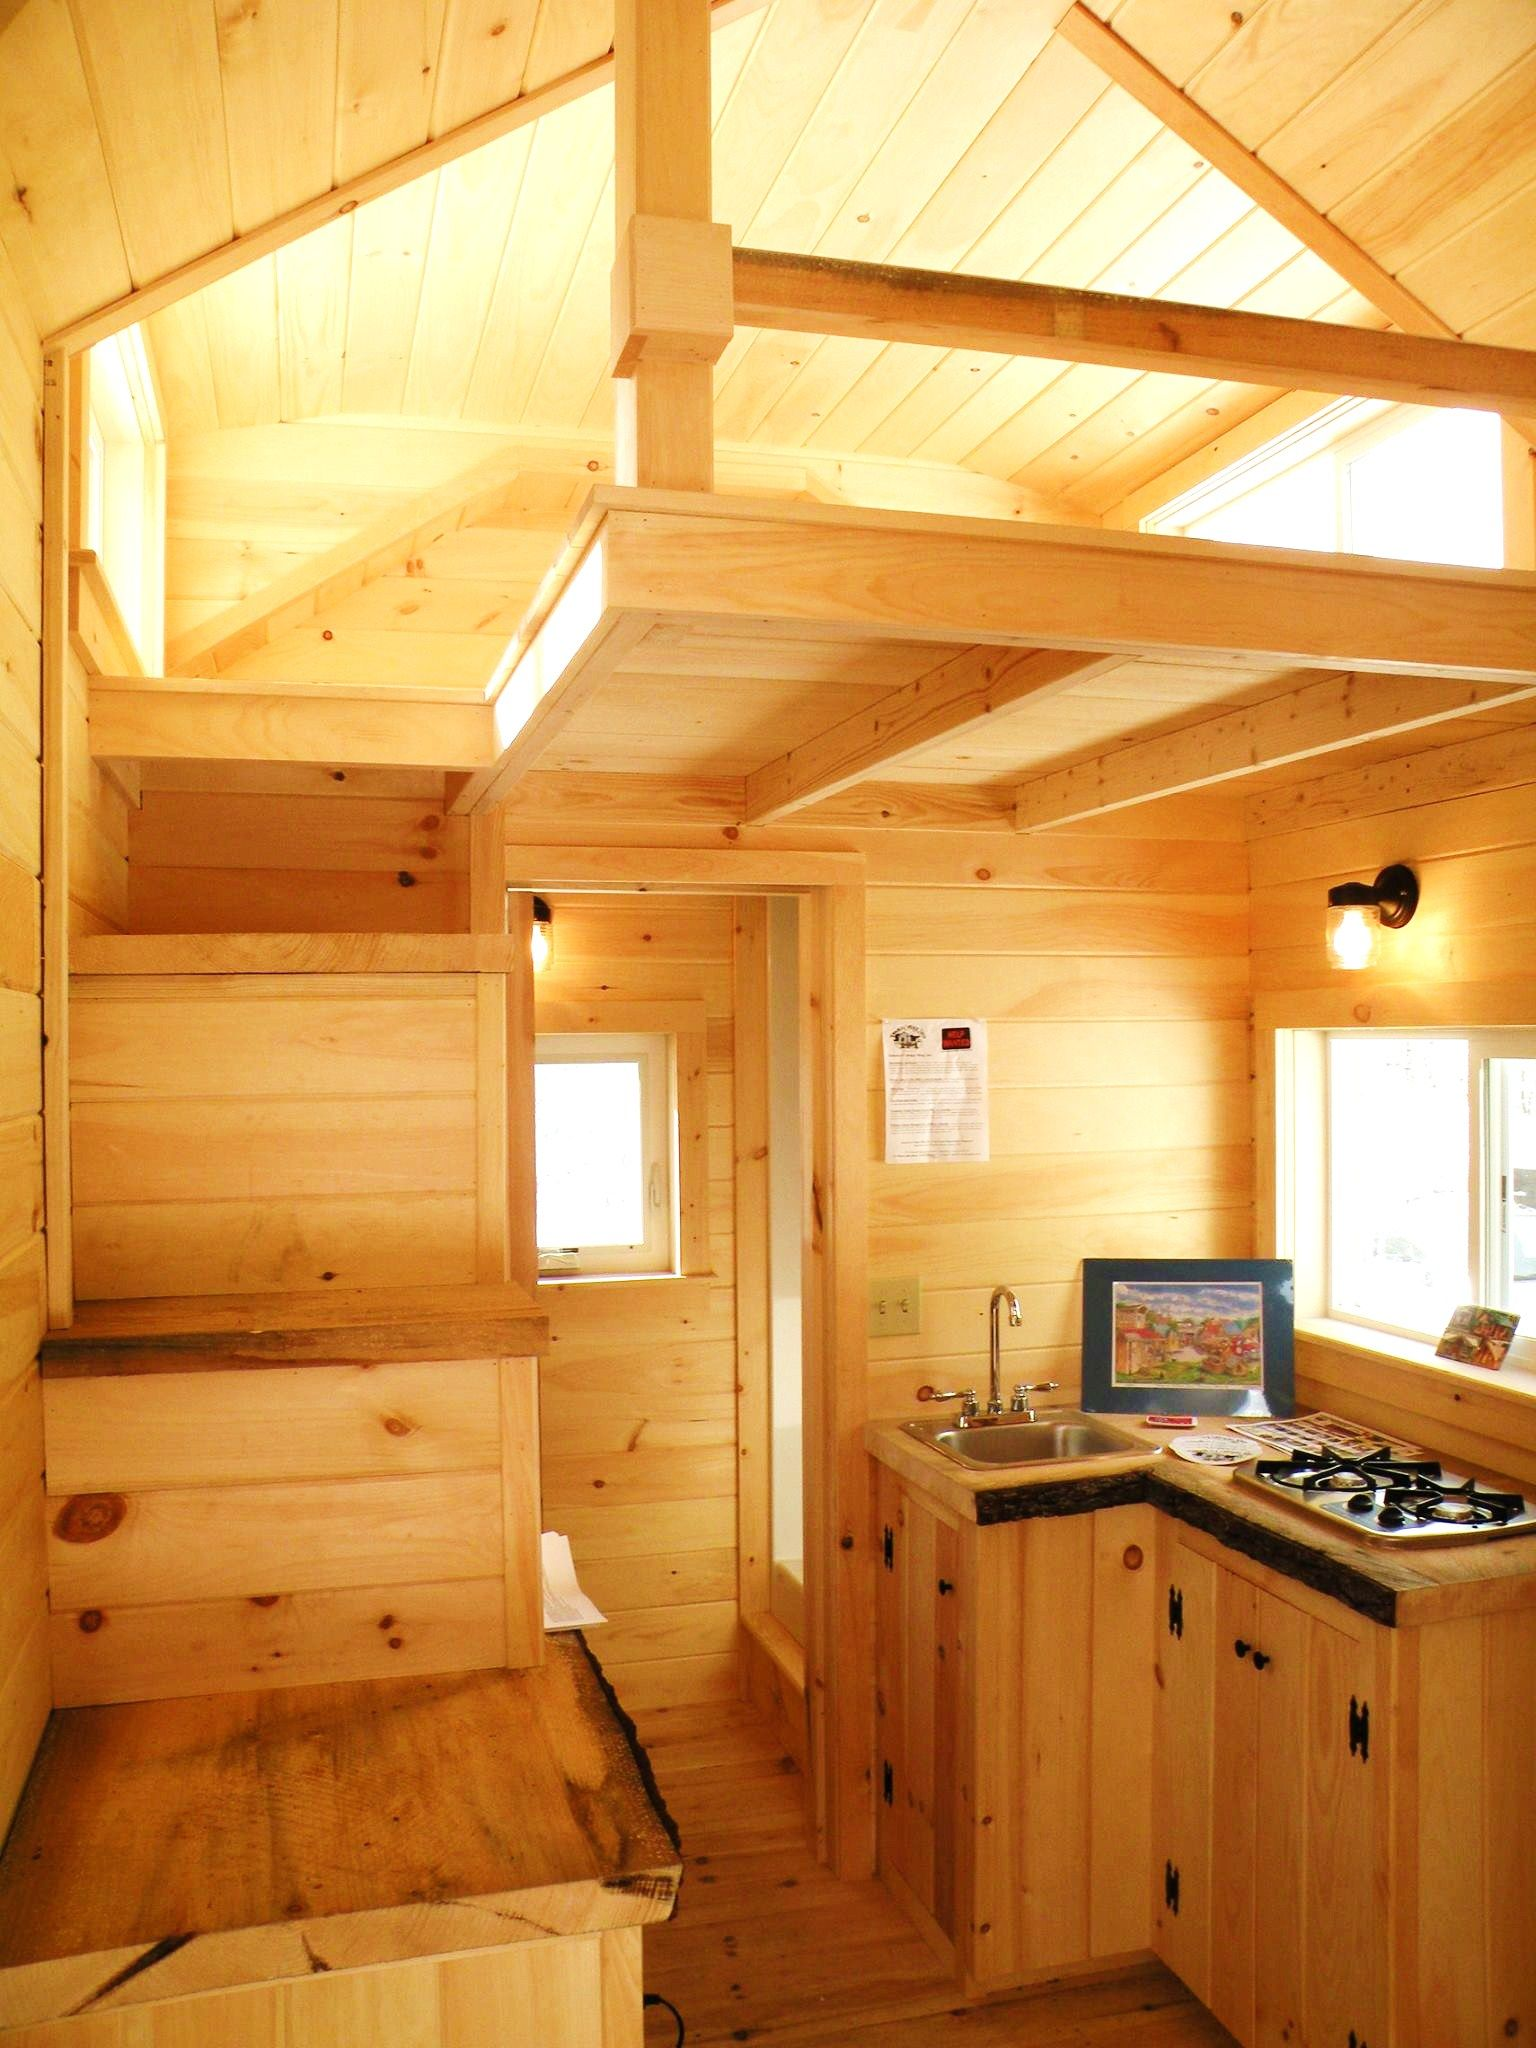 16 Tiny House Interior Design Ideas: Jamaica Cottage Shops Newest Design. 8' X 16' Tiny House